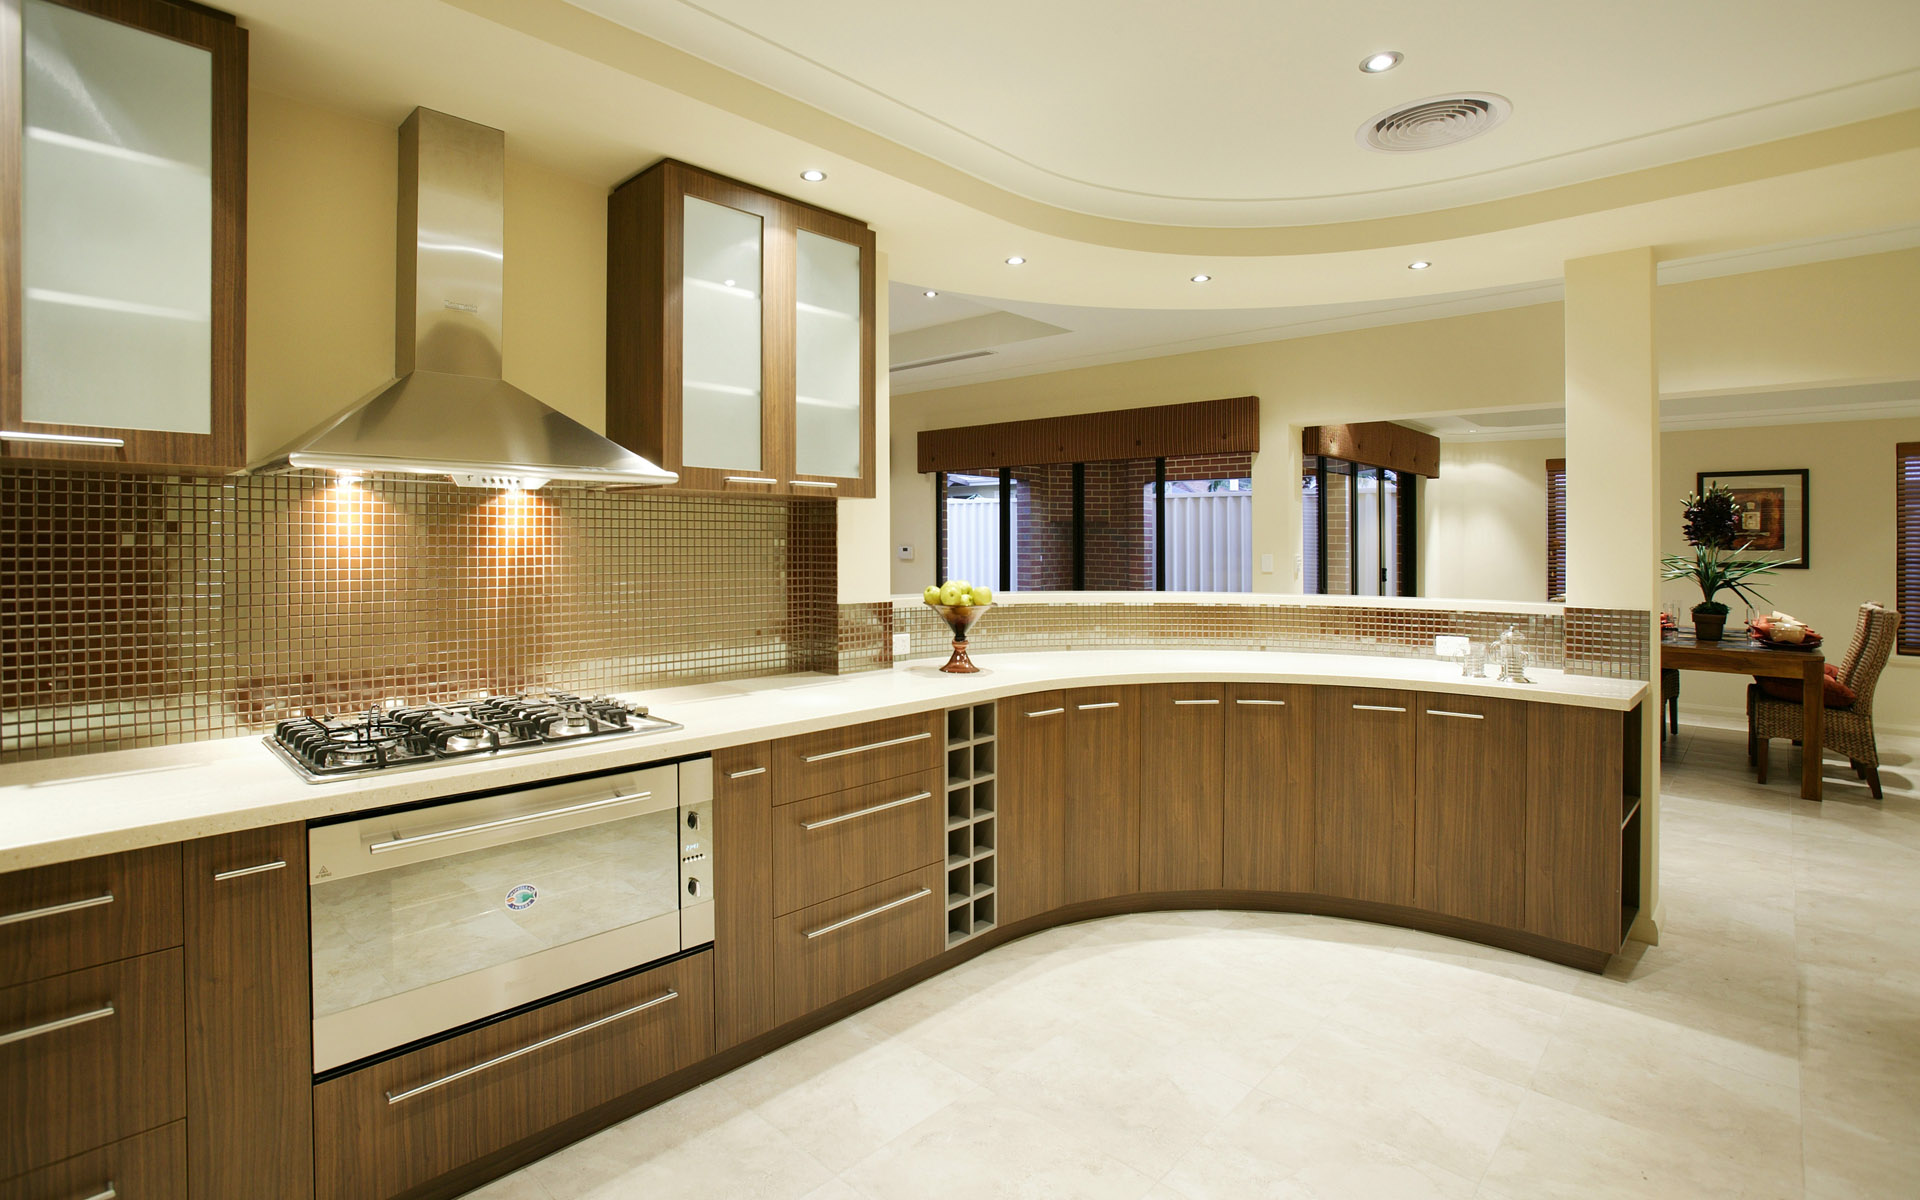 Modern kitchen design ideas kitchen designs al habib for Contemporary kitchen style